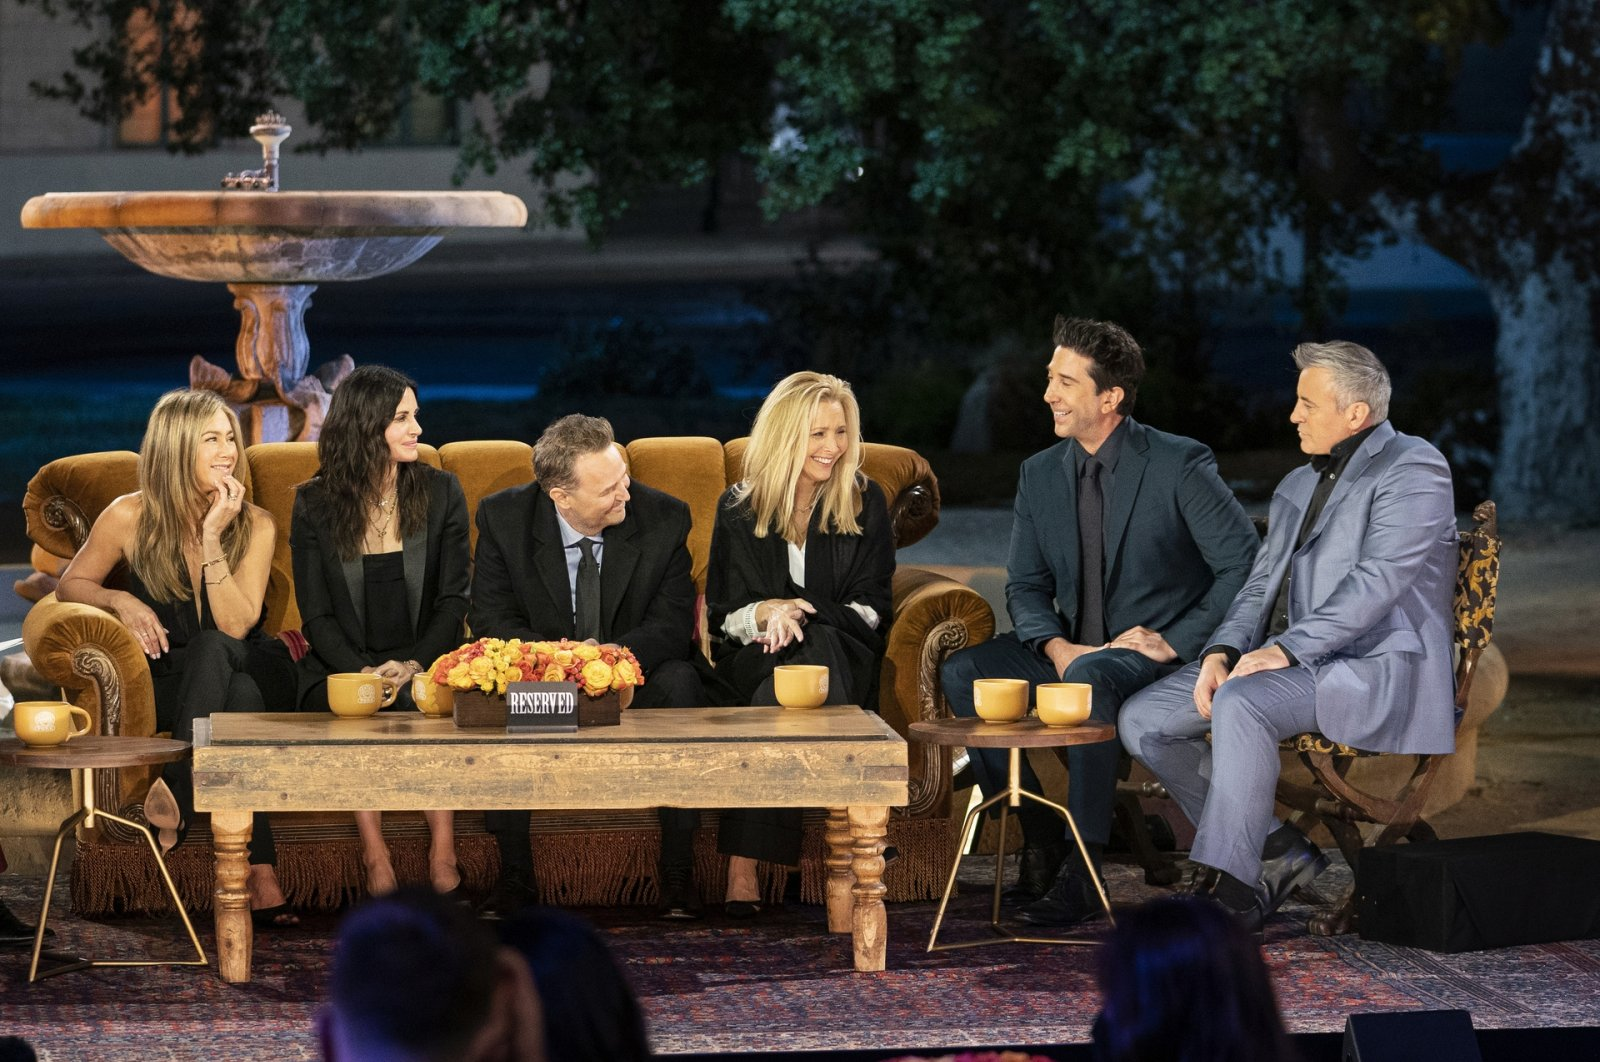 """From the left Jennifer Aniston, Courteney Cox, Matthew Perry, Lisa Kudrow, David Schwimmer and Matt LeBlanc sit around the famous sofa from the television series """"Friends"""" during the reunion special, with the water fountain from the show's intro in the background. (HBO Max via AP)"""